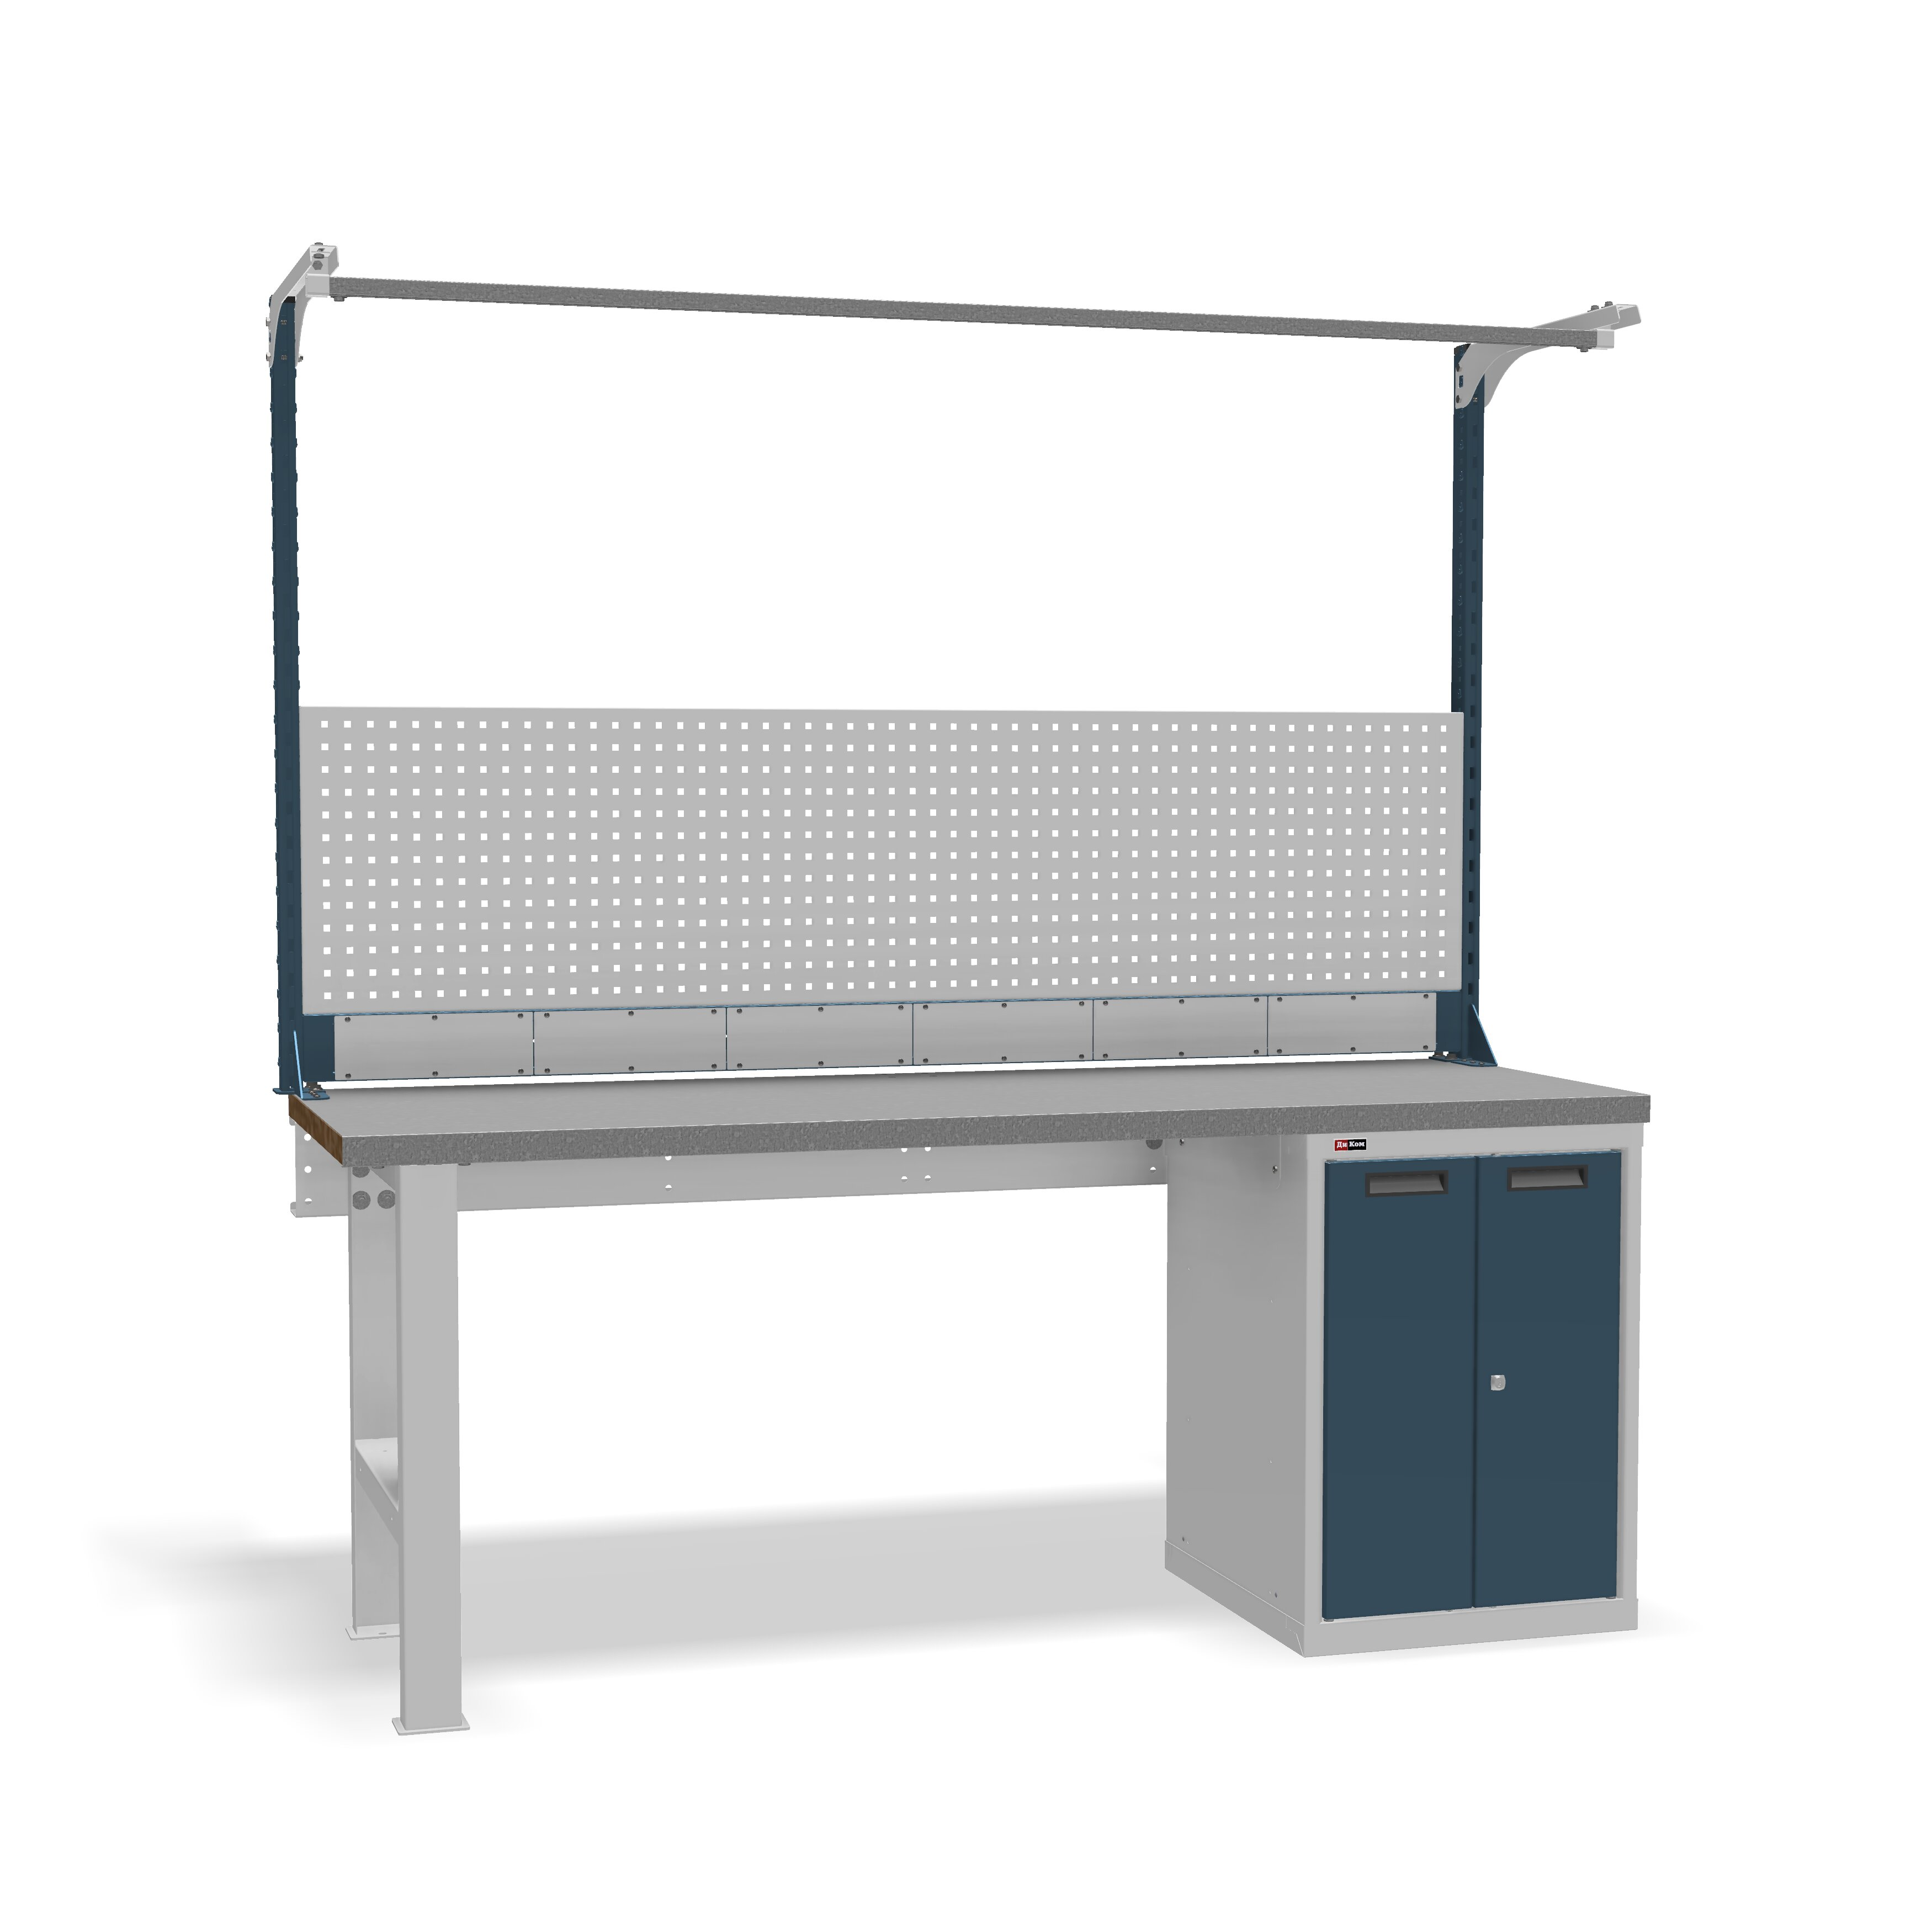 DiKom VS-200-03 Workbench + DiKom Perforated Panel VS-200-E5